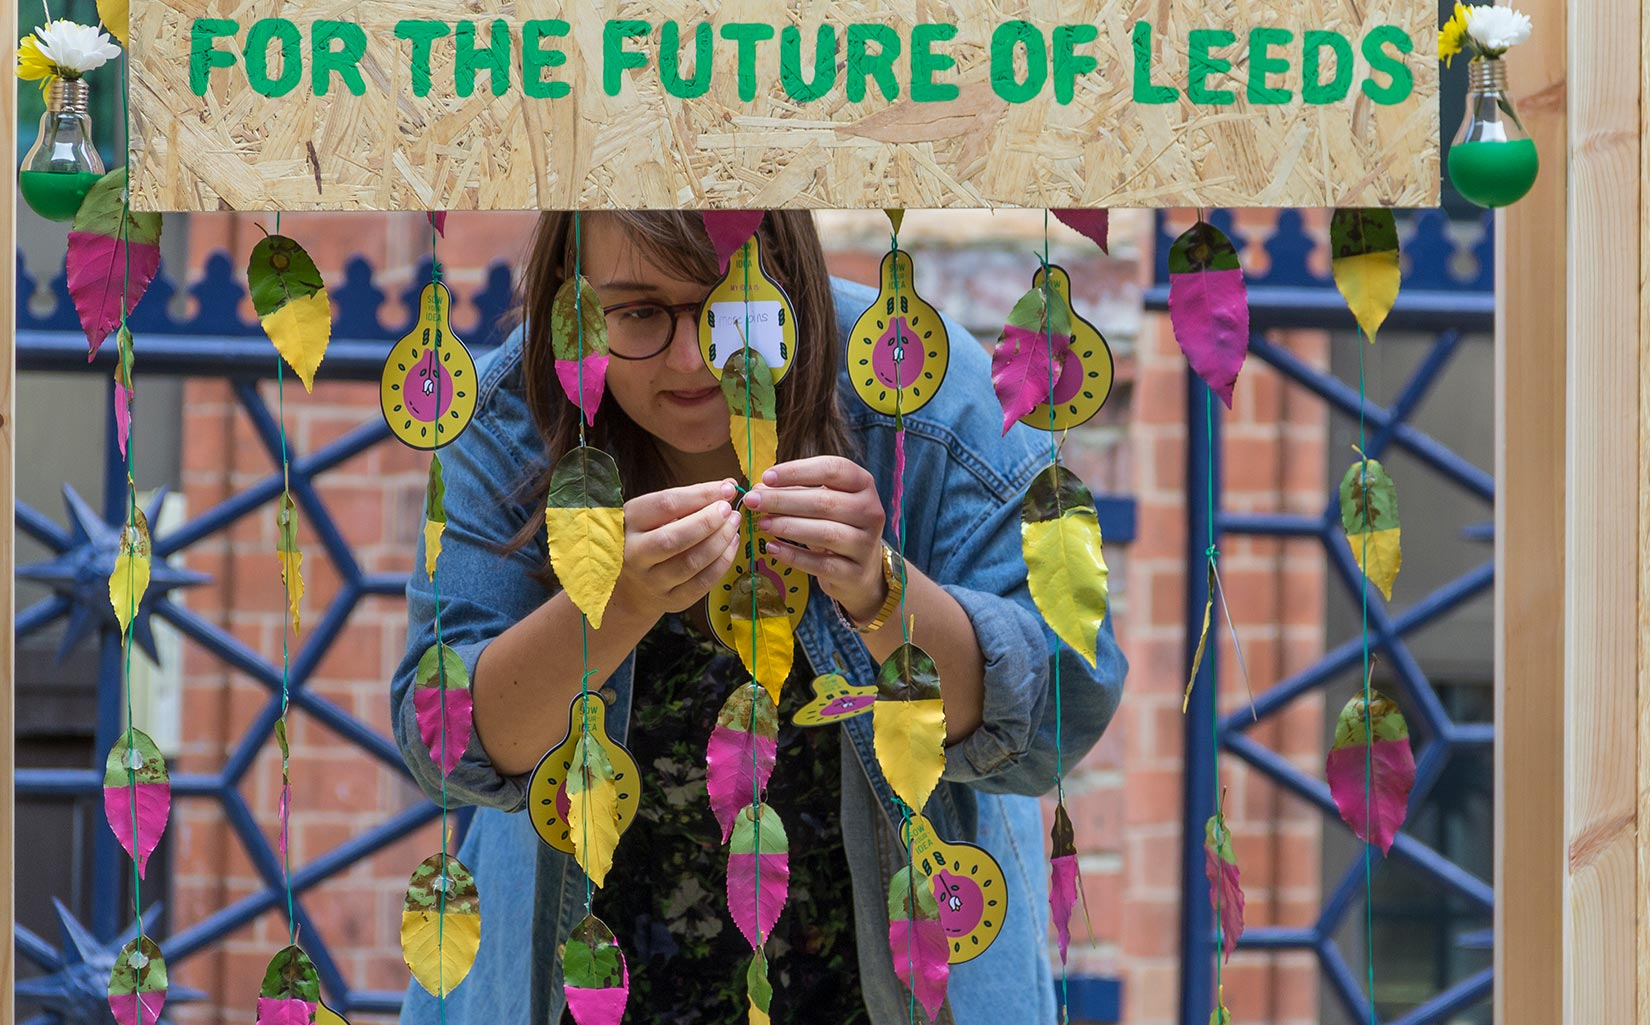 PARK HERE, Leeds, 'Sow a Seed' for the future with Leeds based artist collective Reet So